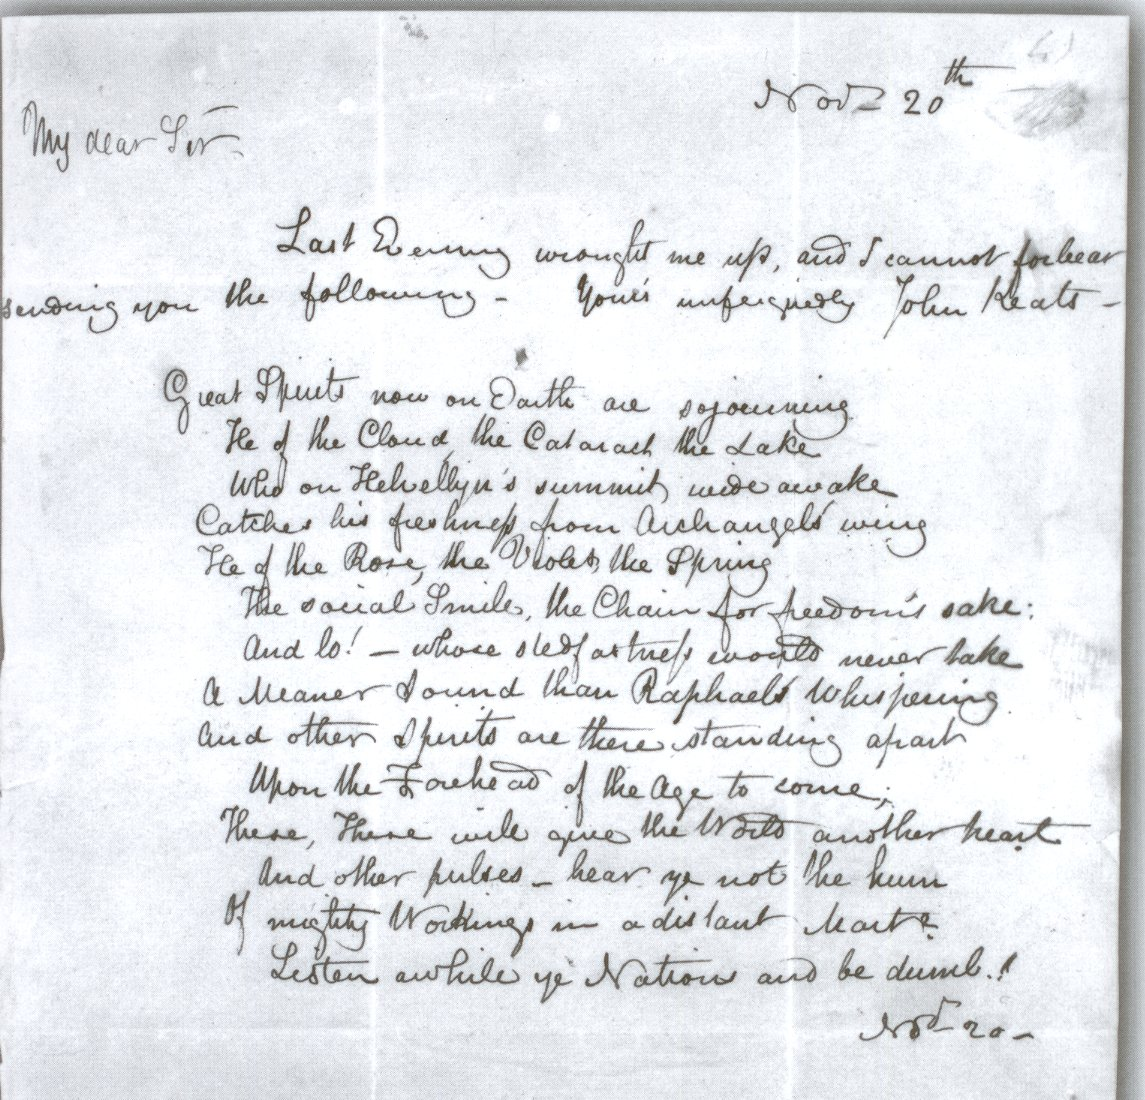 John Keats letters analysis